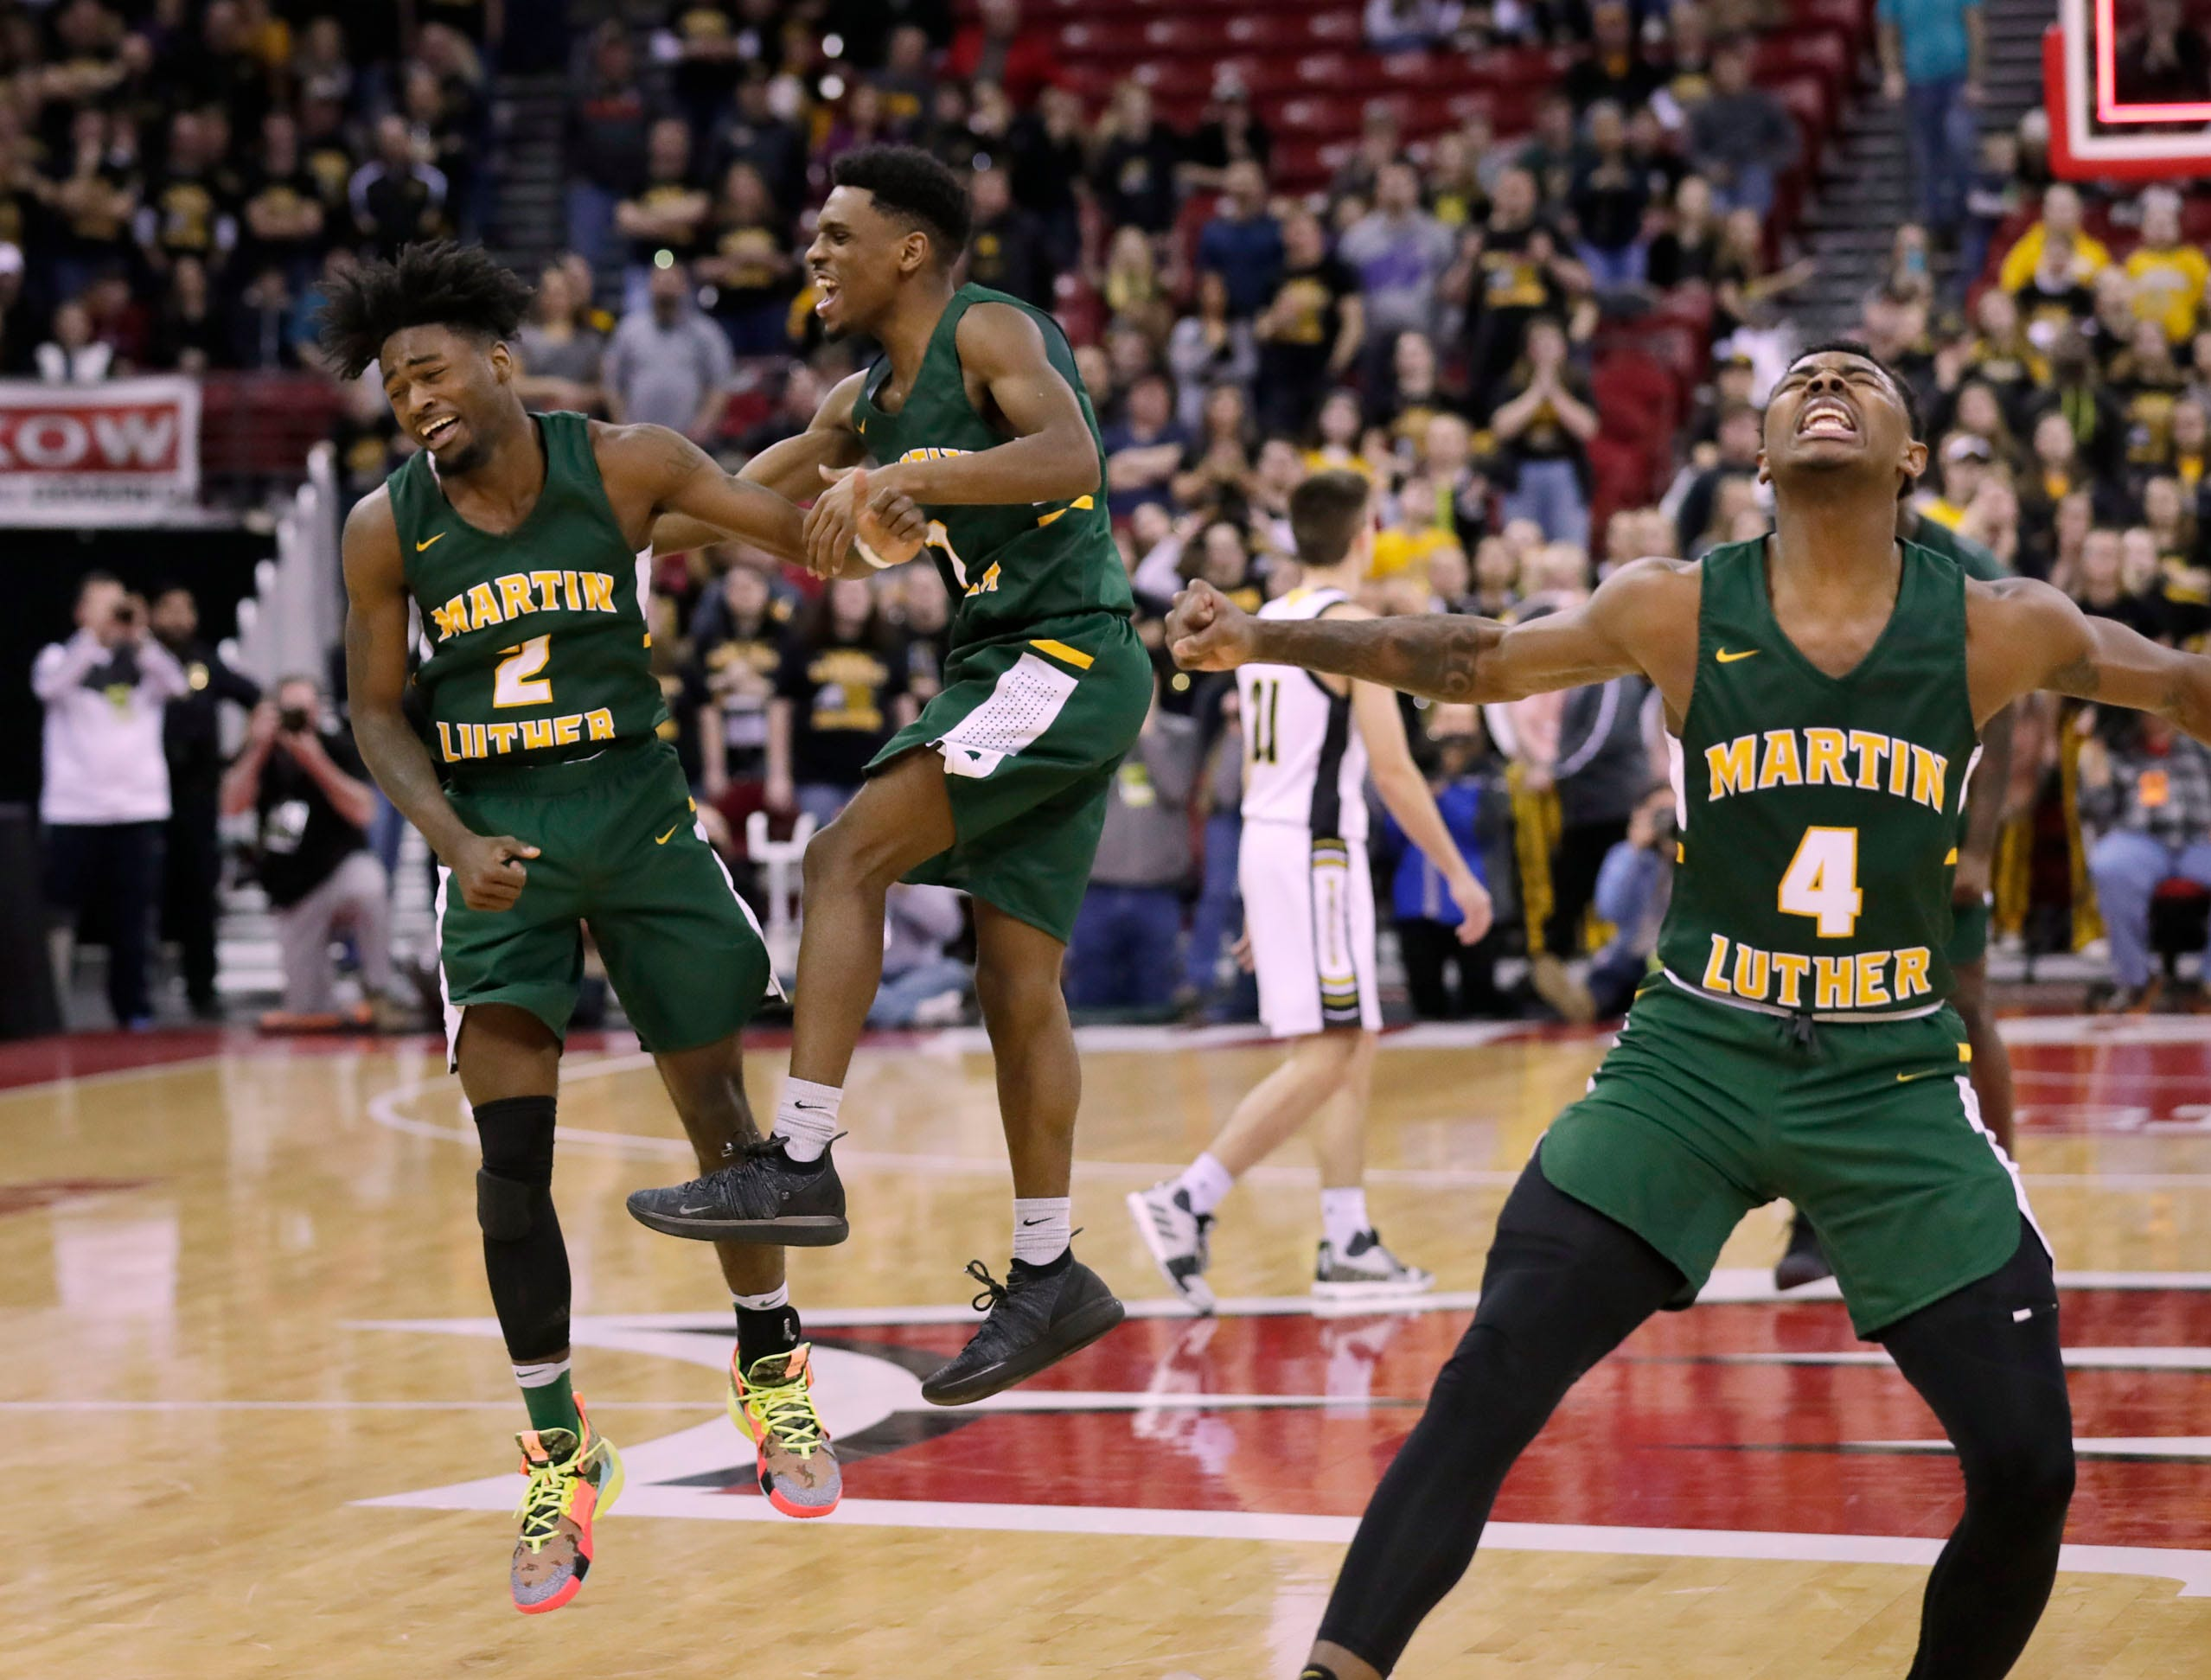 Martin Luther players react at the buzzer as Martin Luther defeats Waupun, 58-49, during the Division 3 championship game at the WIAA 2019 boys basketball state tournament in Madison, Wisconsin, Saturday, March 16, 2019.  Rick Wood/Milwaukee Journal Sentinel